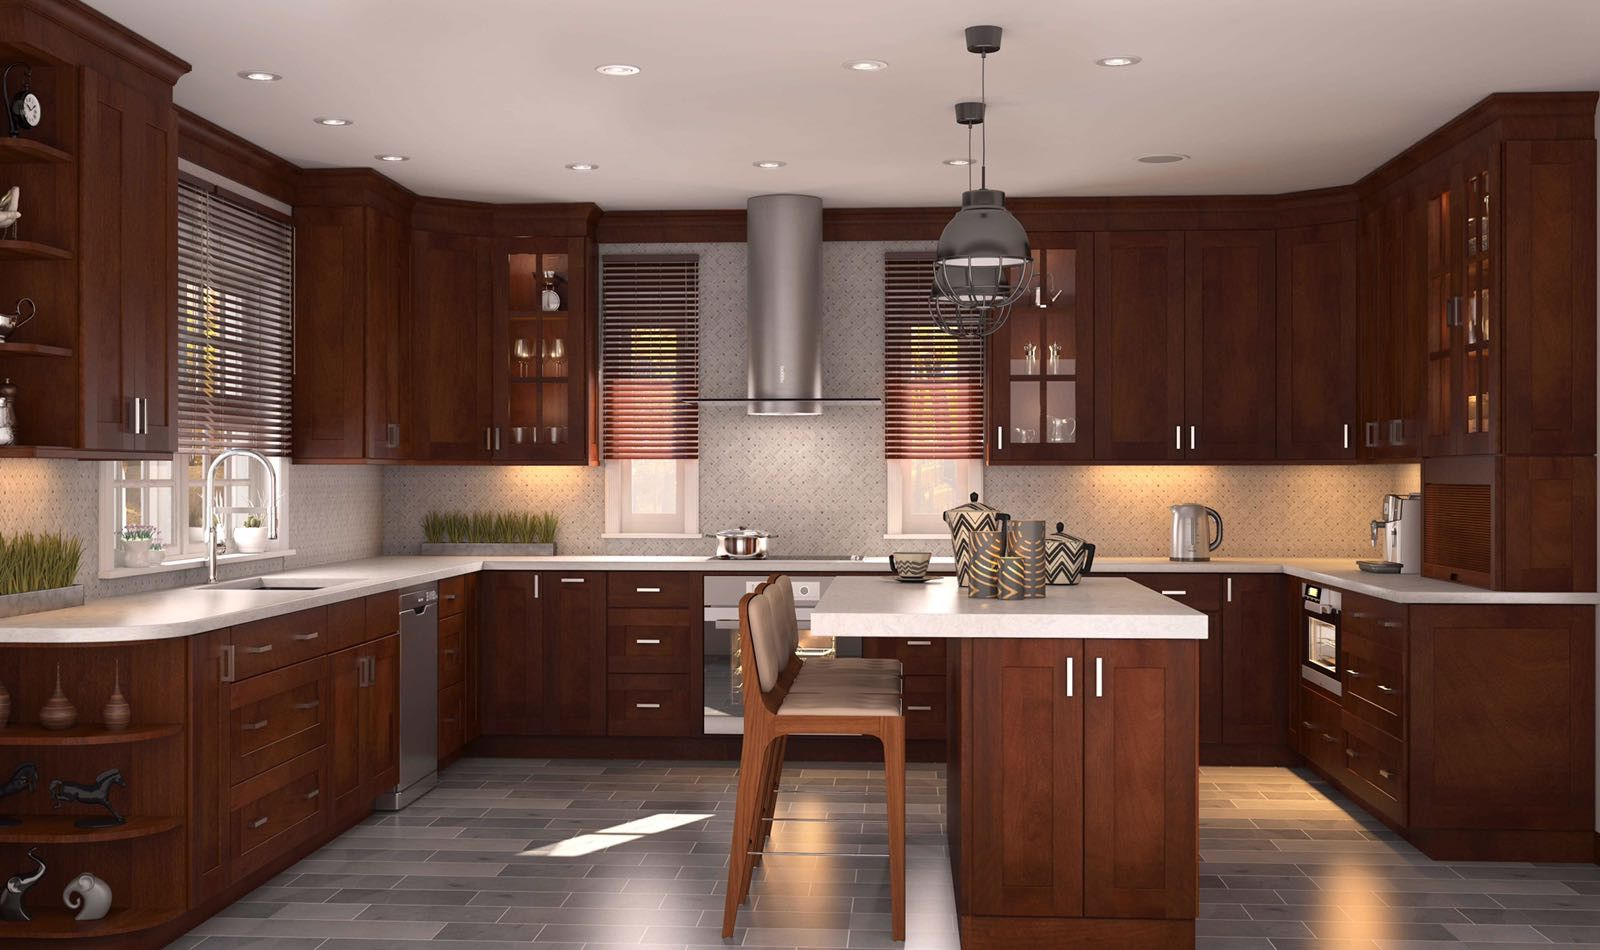 50+ Kitchen Cabinets Bronx Ny - Kitchen Cabinet Lighting Ideas Check ...